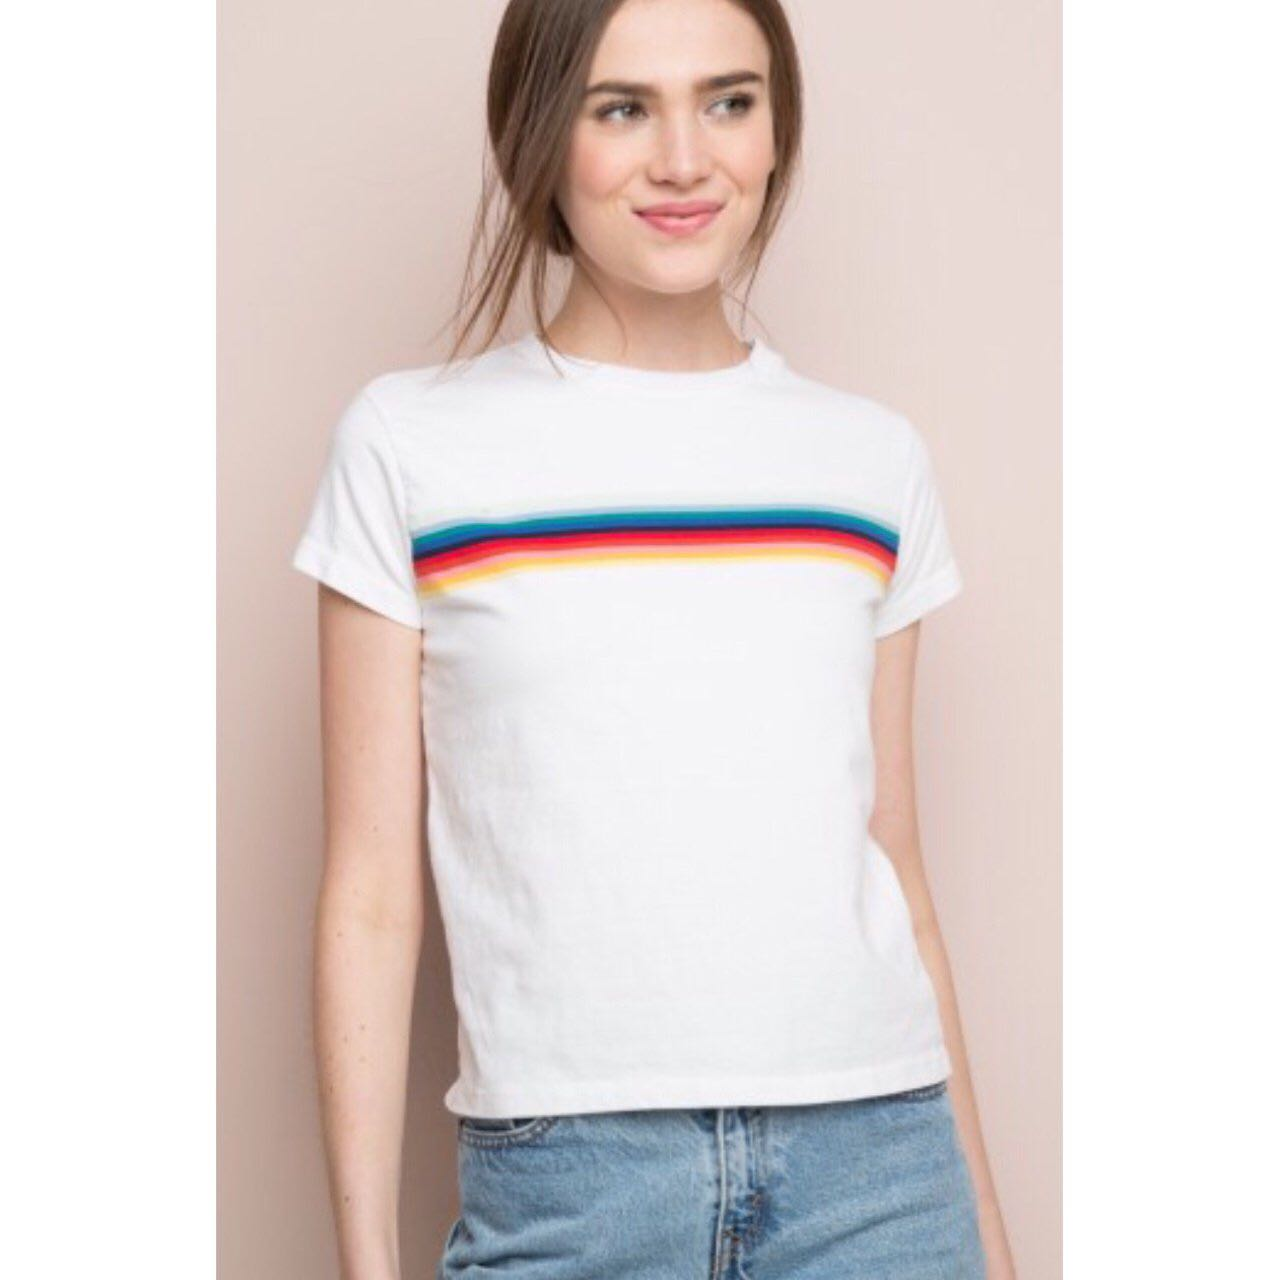 49c4abba7b Authentic Brandy Melville rainbow top